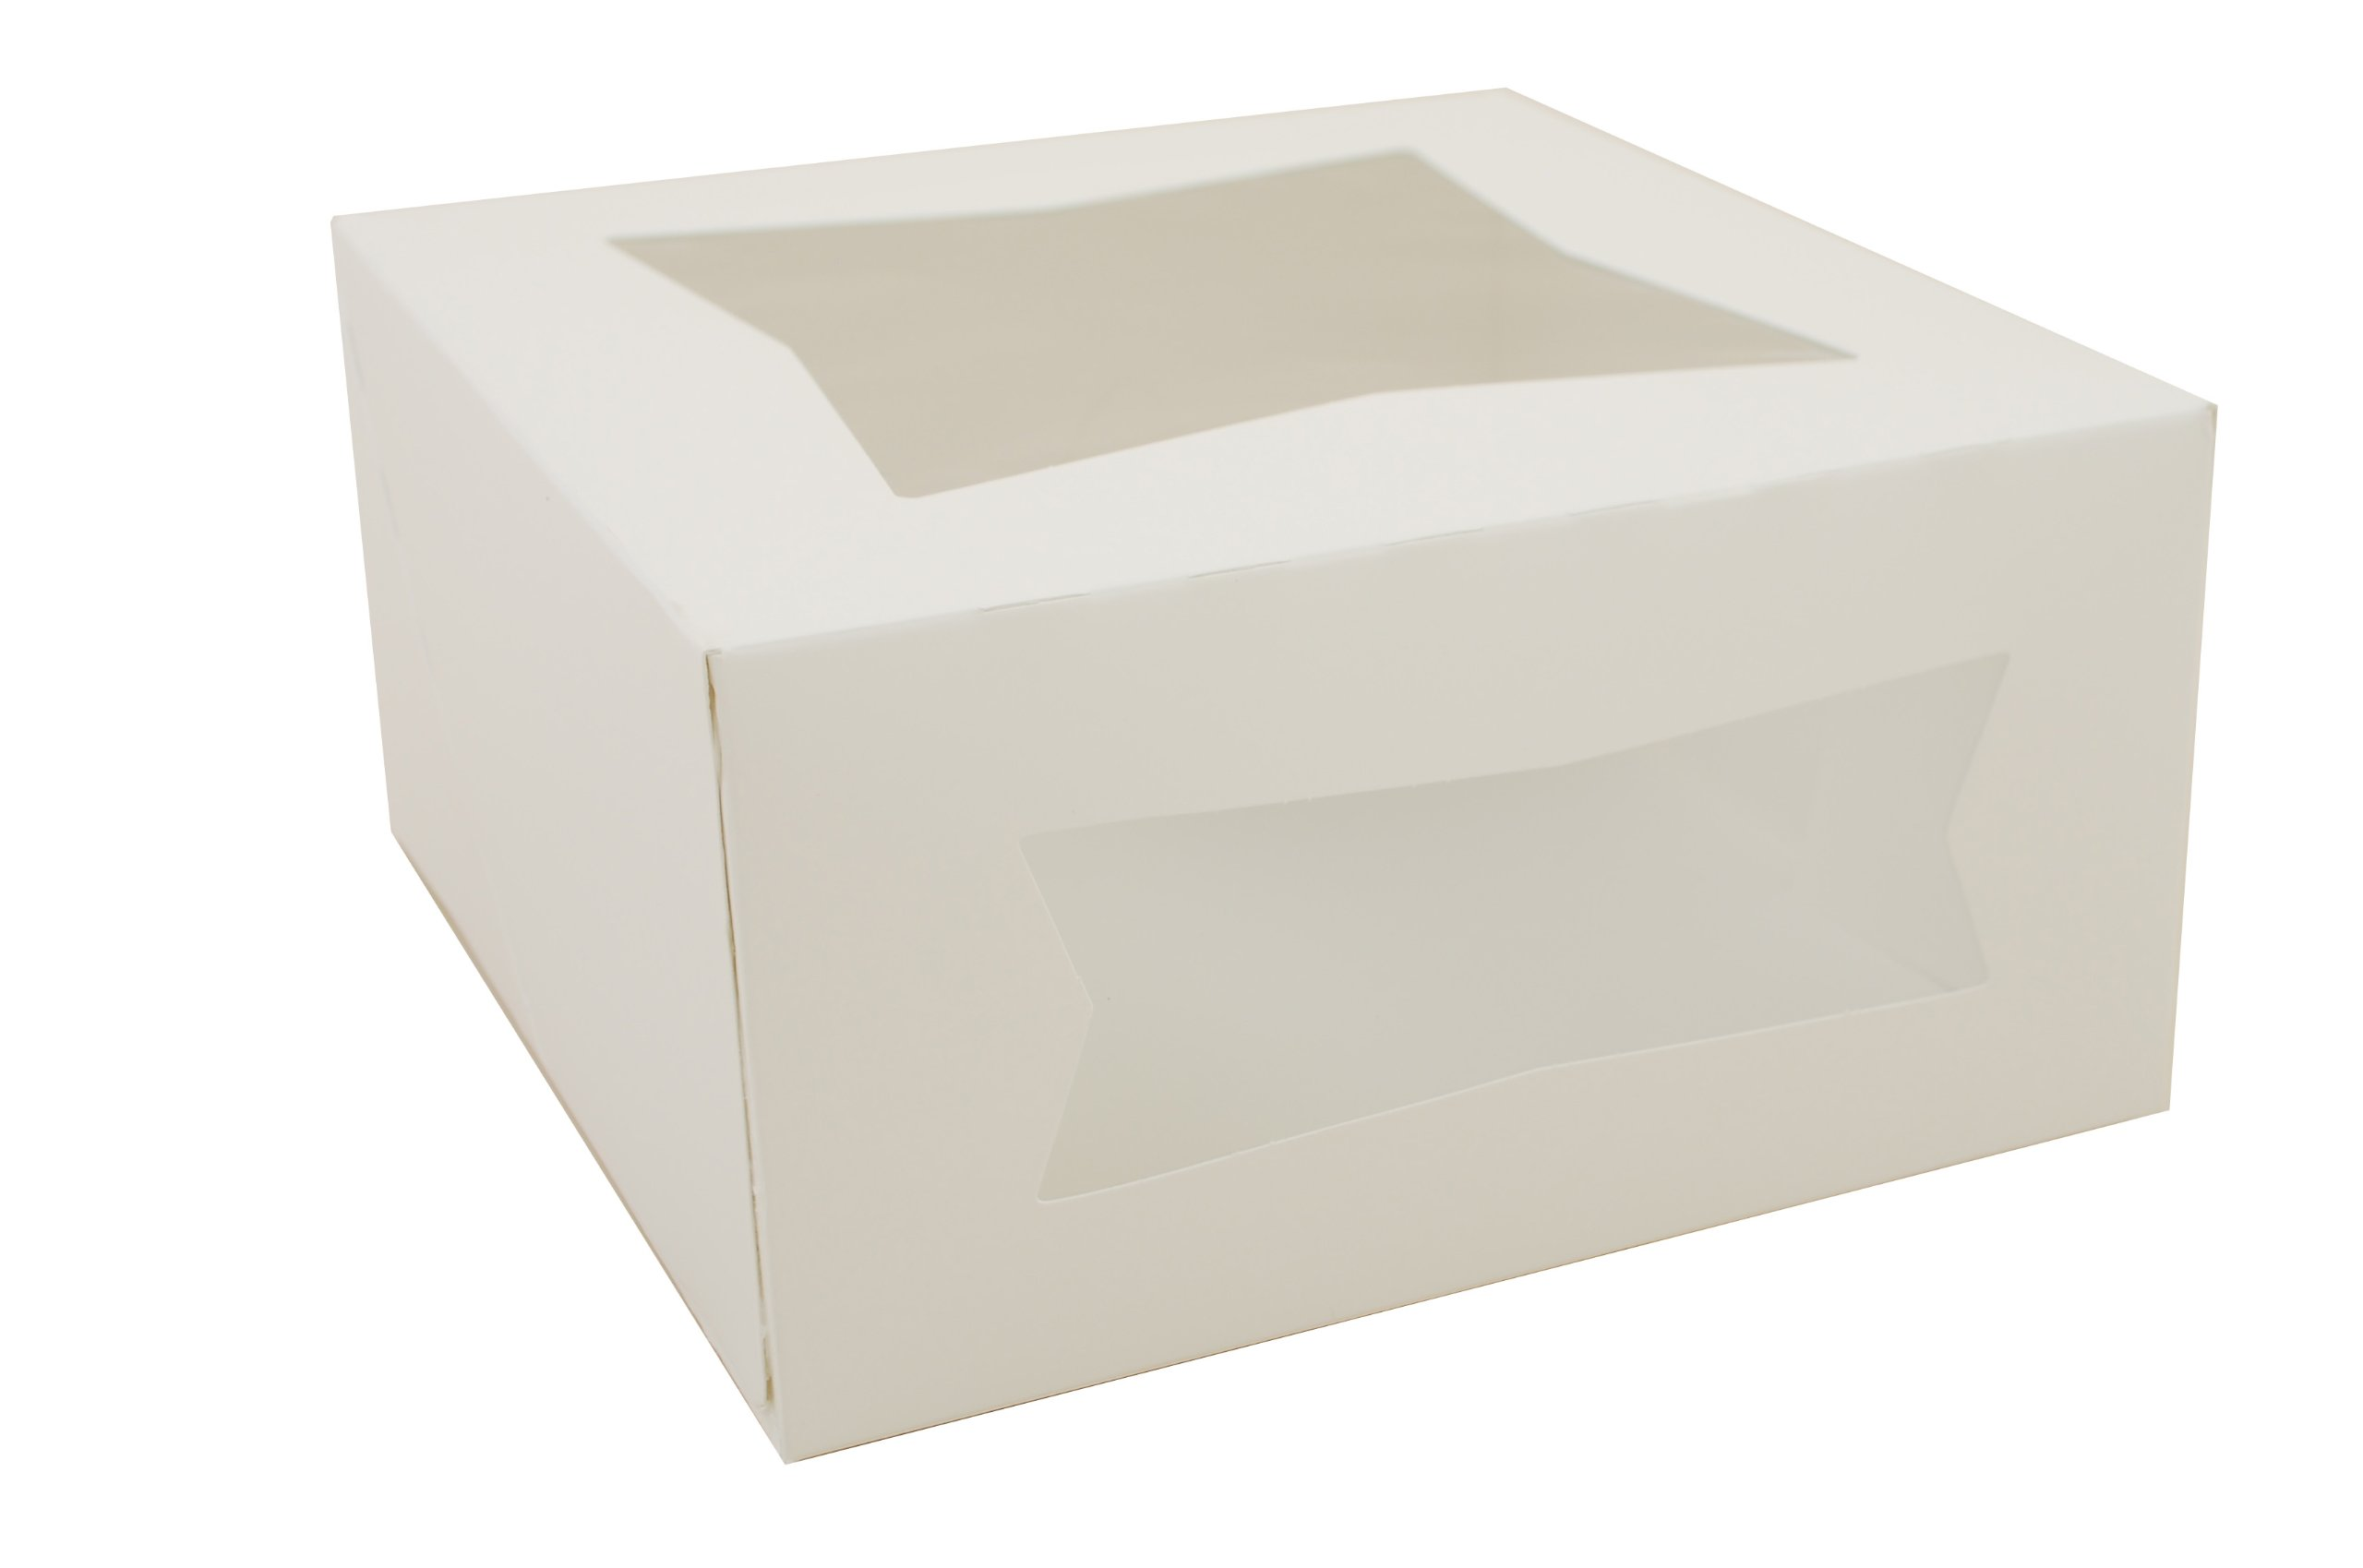 Southern Champion Tray 24053 Paperboard White Window Bakery Box, 8'' Length x 8'' Width x 4'' Height (Case of 150)